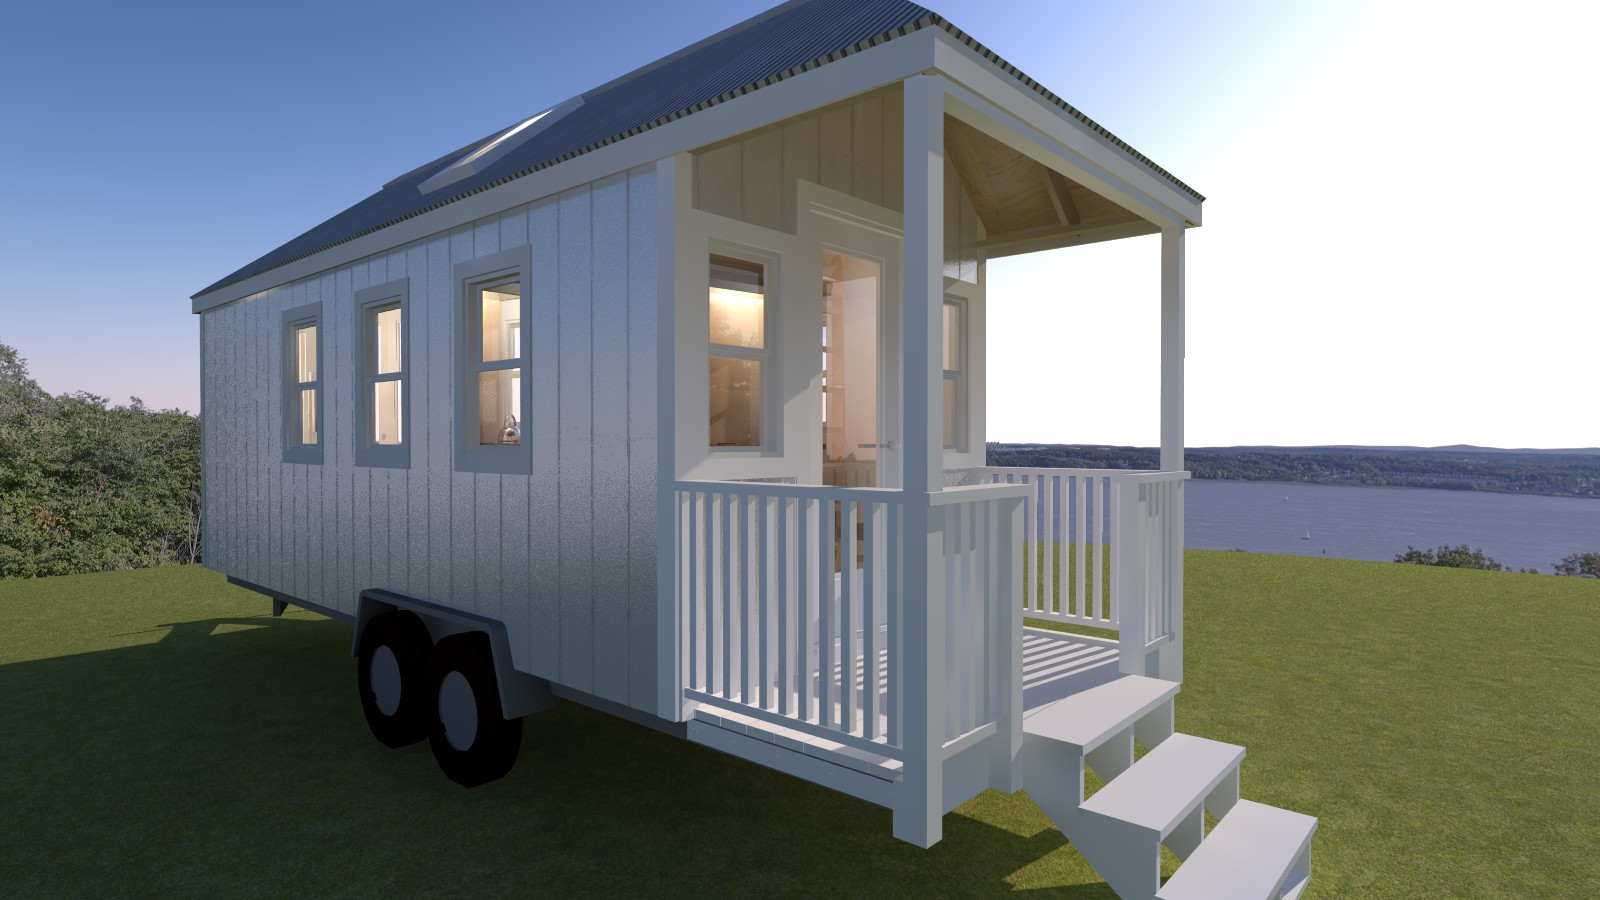 House 24 Boonville 24 Tiny House Plans